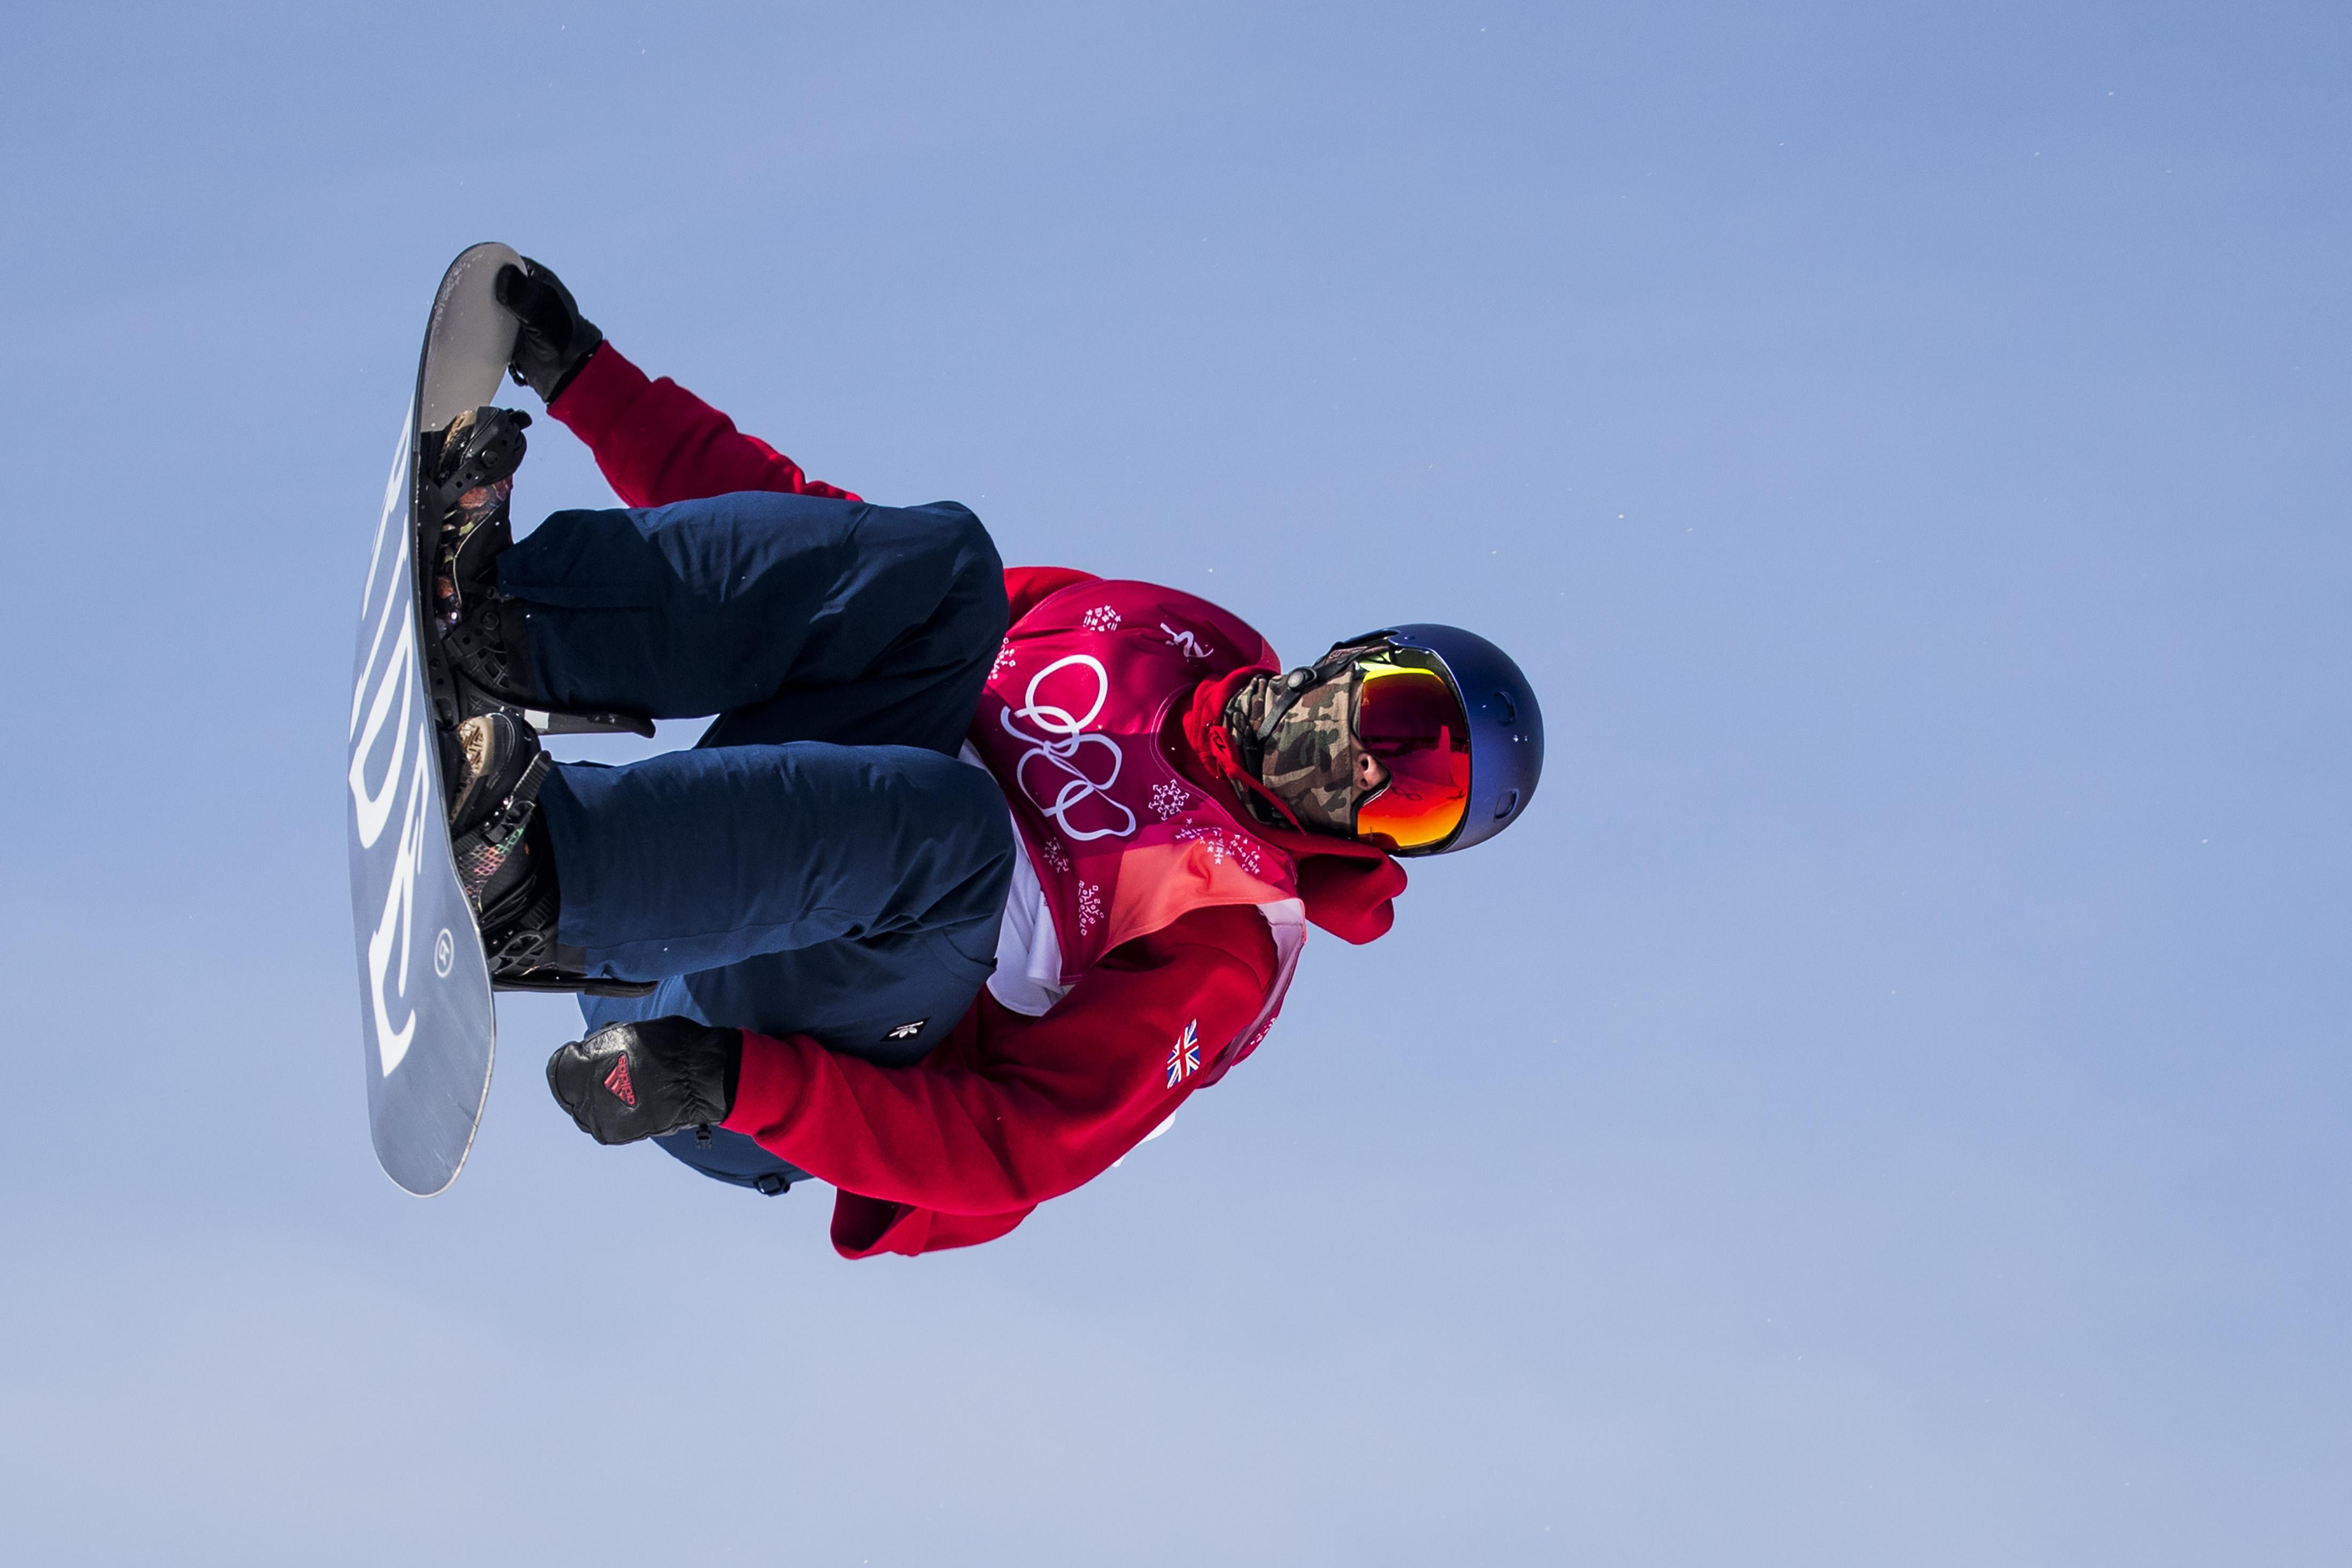 Morgan did not make it through to the slopestyle finals but is through to the big air final